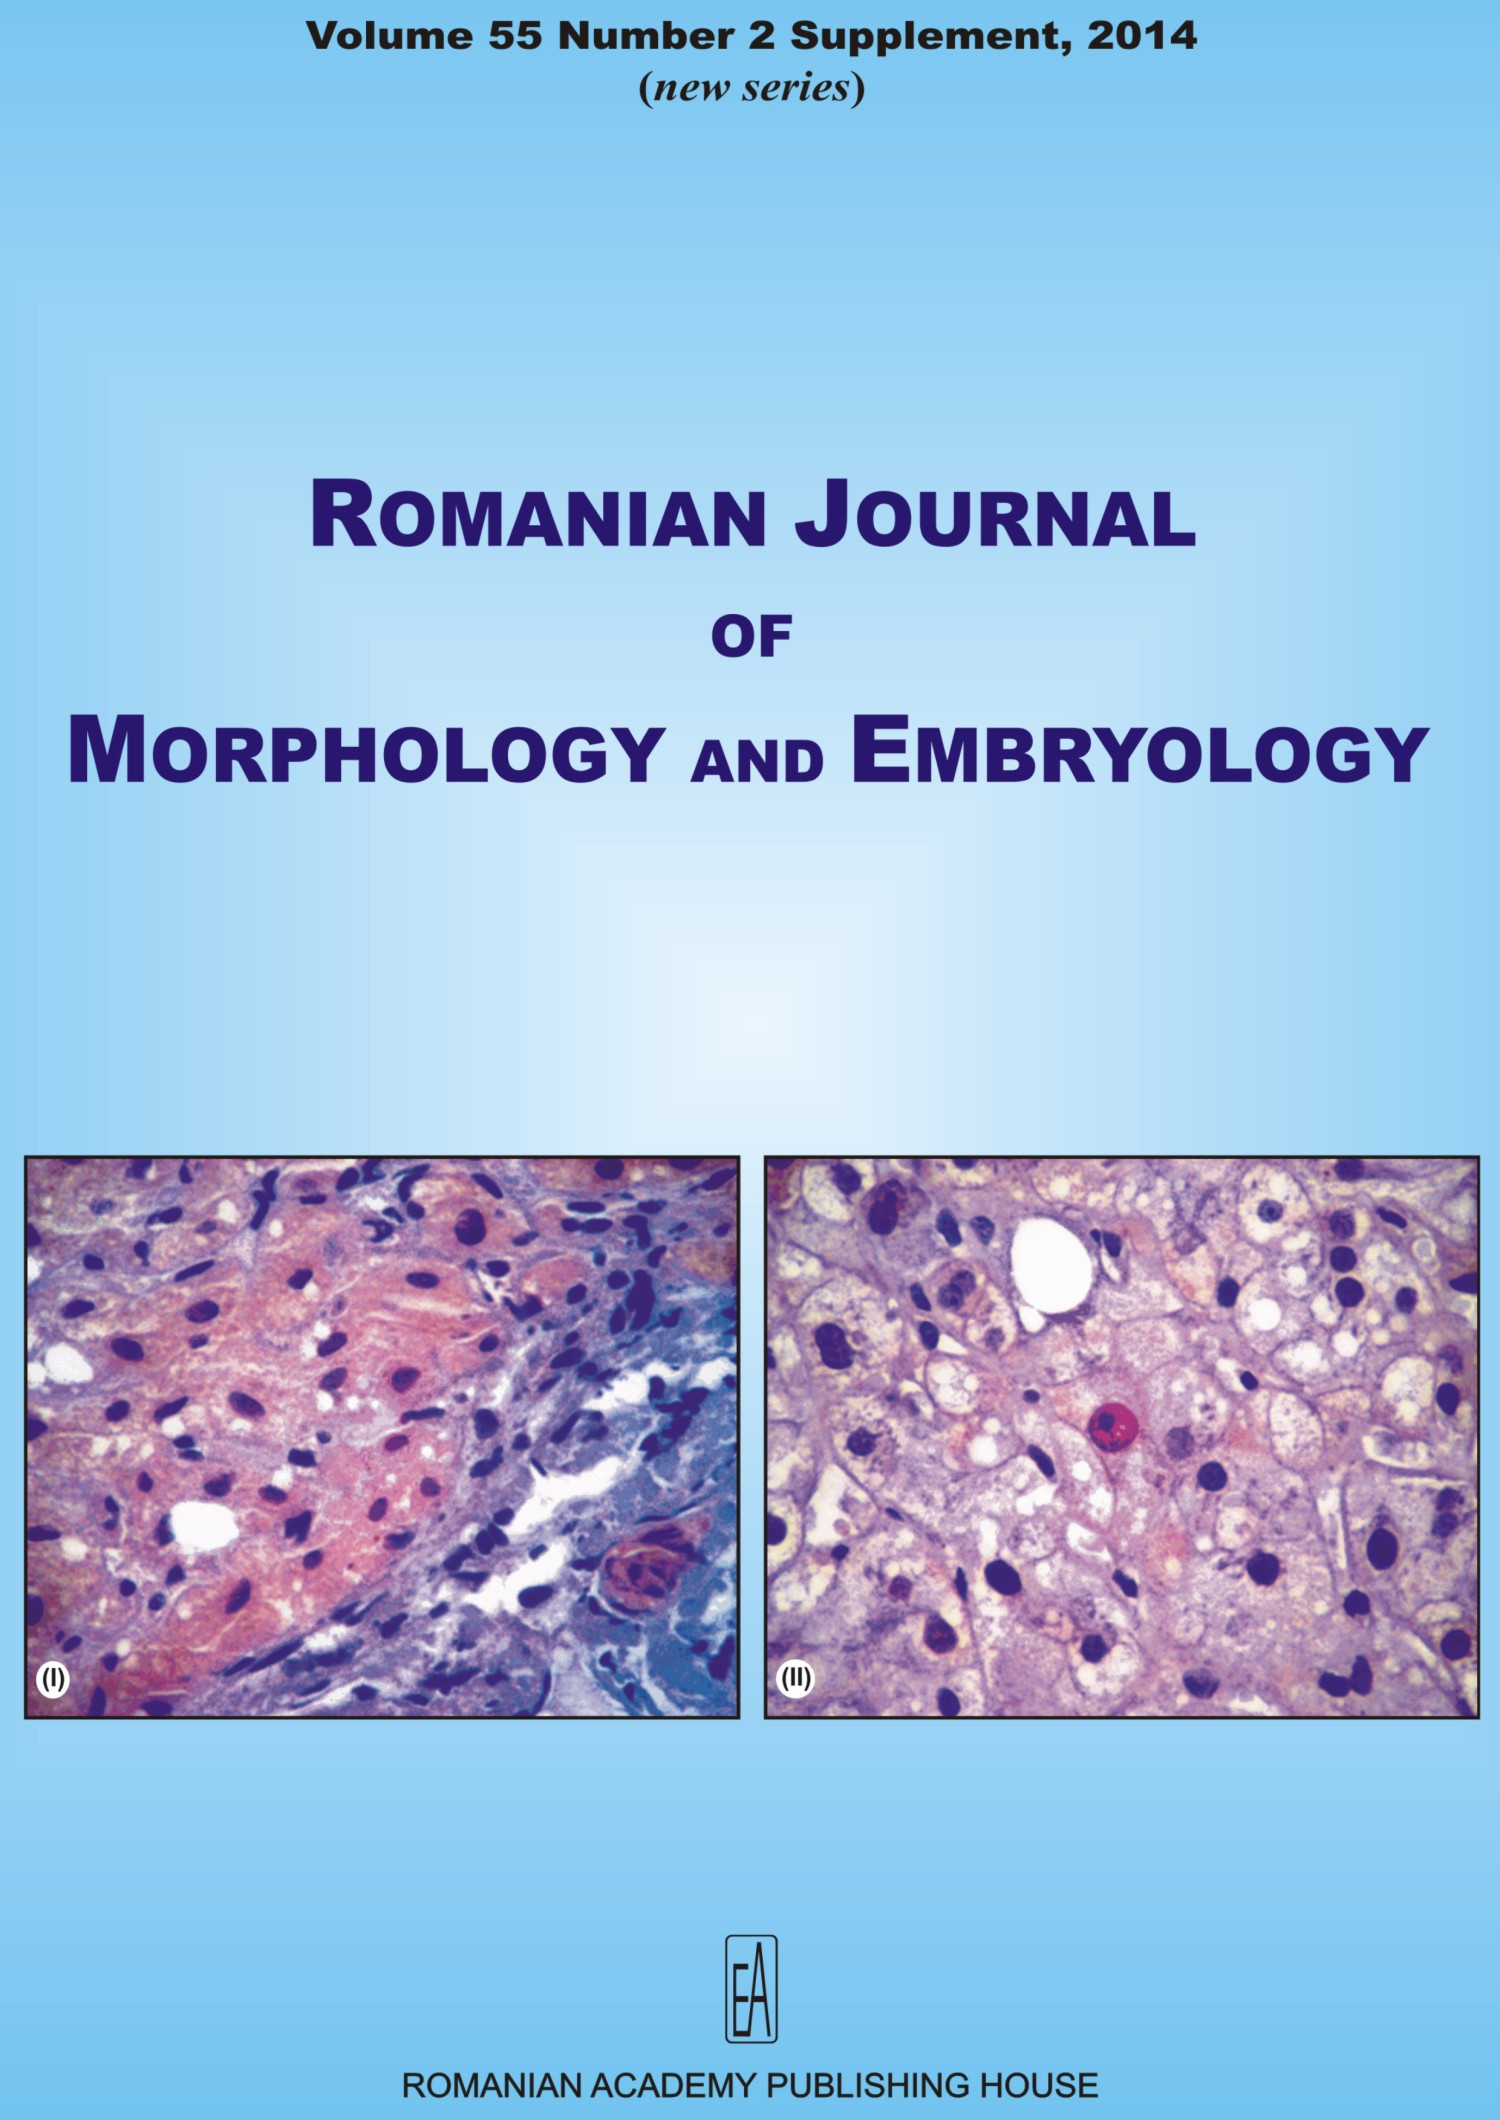 Romanian Journal of Morphology and Embryology, vol. 55 no. 2Suppl, 2014